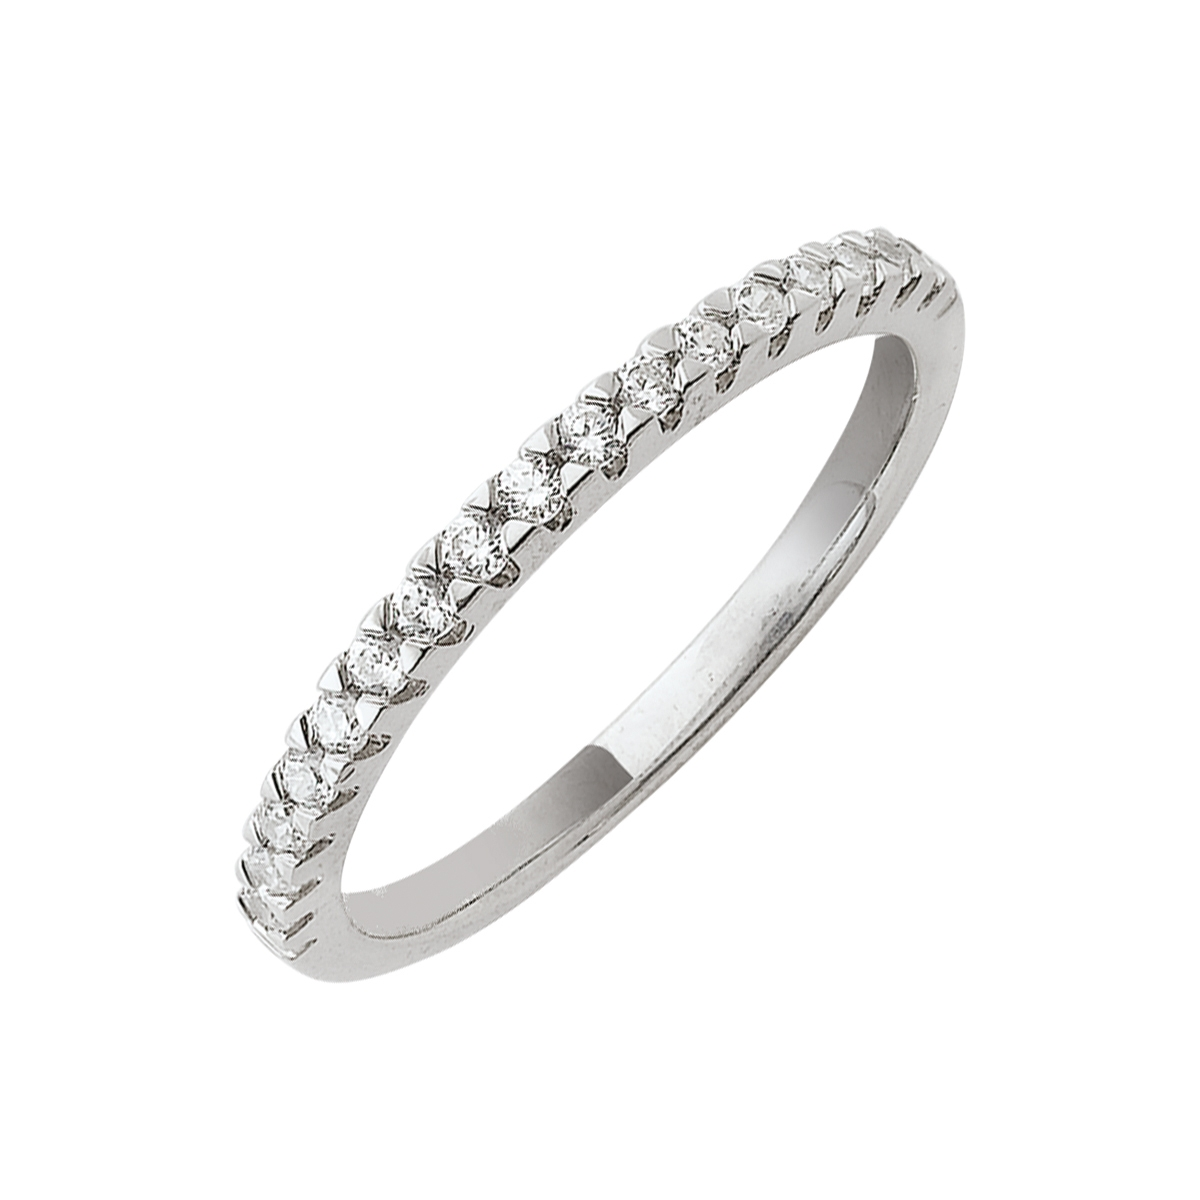 Alliance demi-tour serti griffes or blanc - Diamants synthétiques 0,25 carat